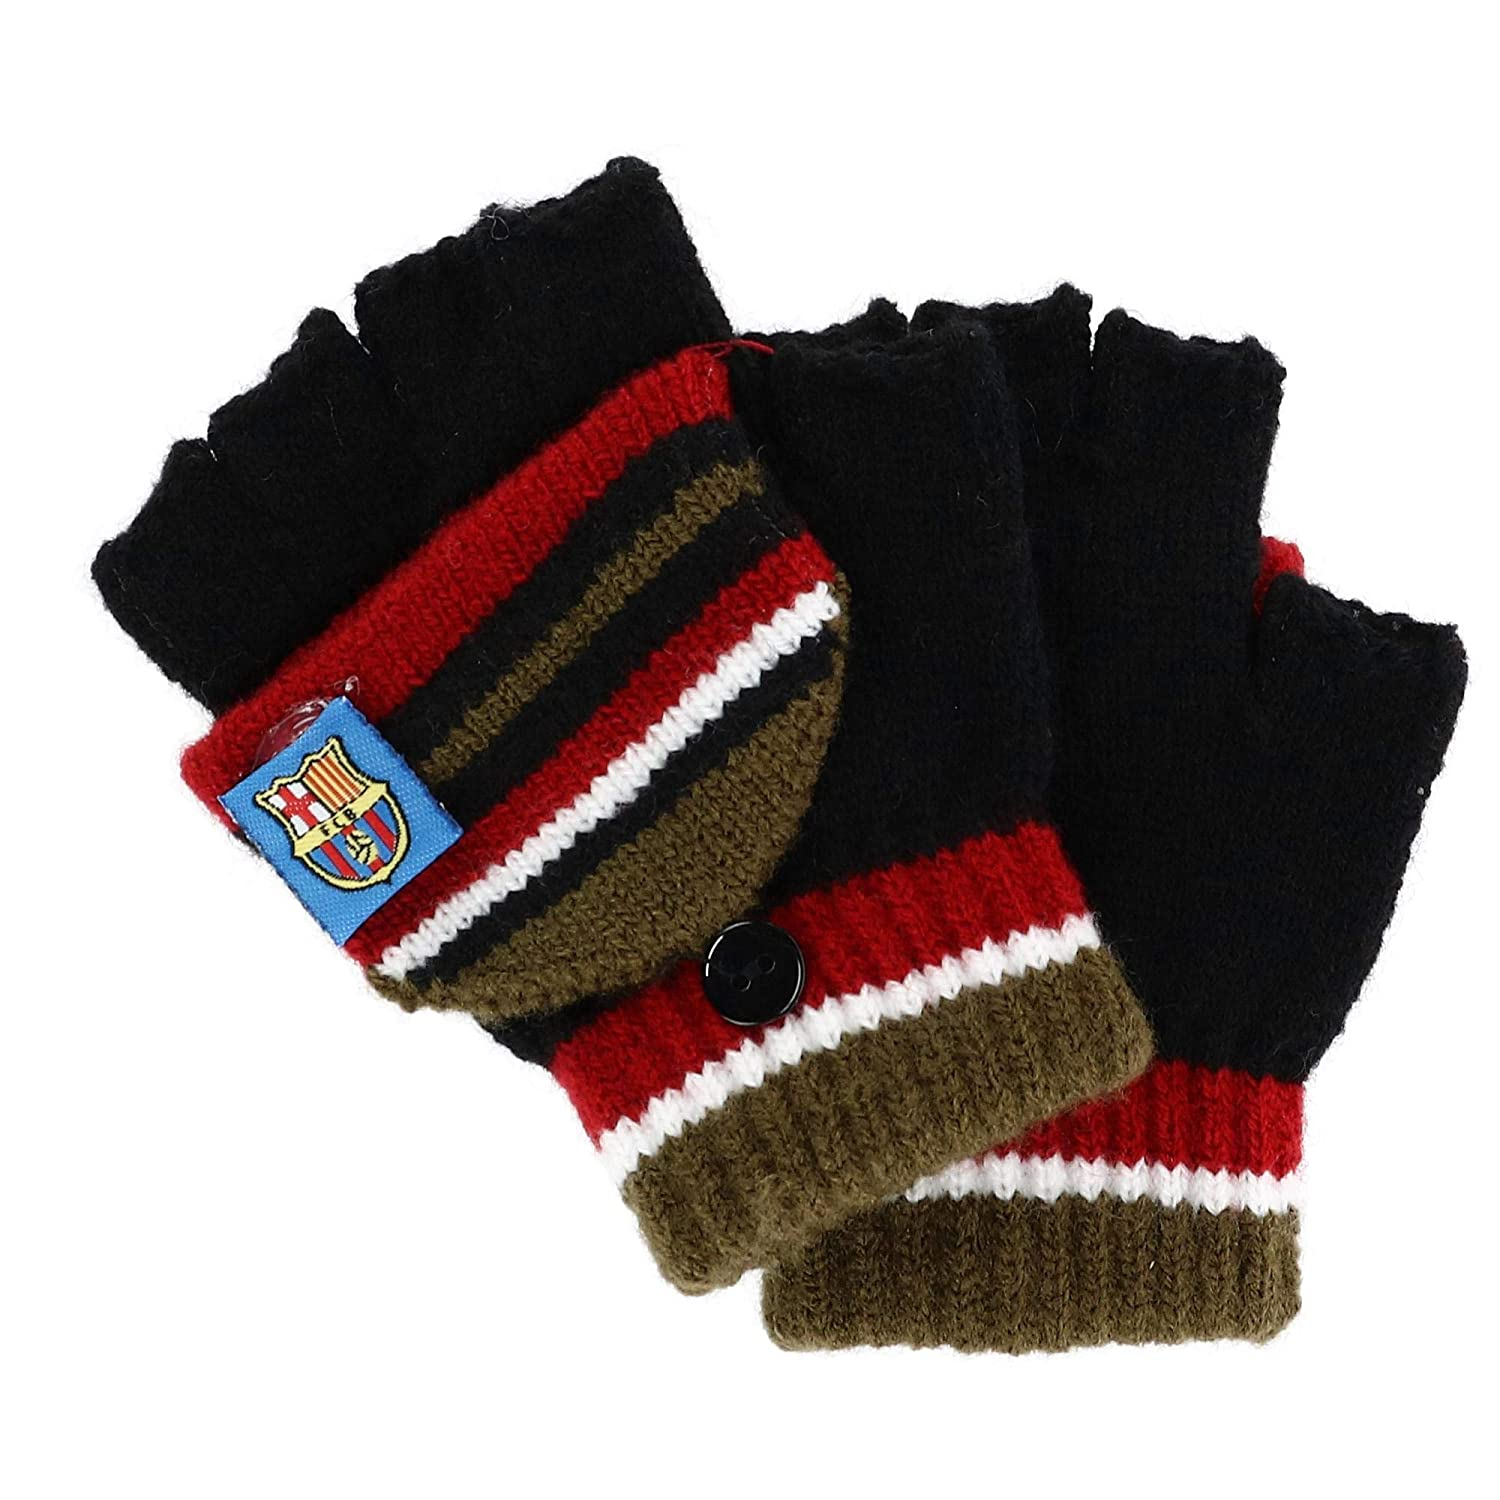 Foemo Kids 5-8 Knit Convertible Winter Mitten Gloves, Burgundy